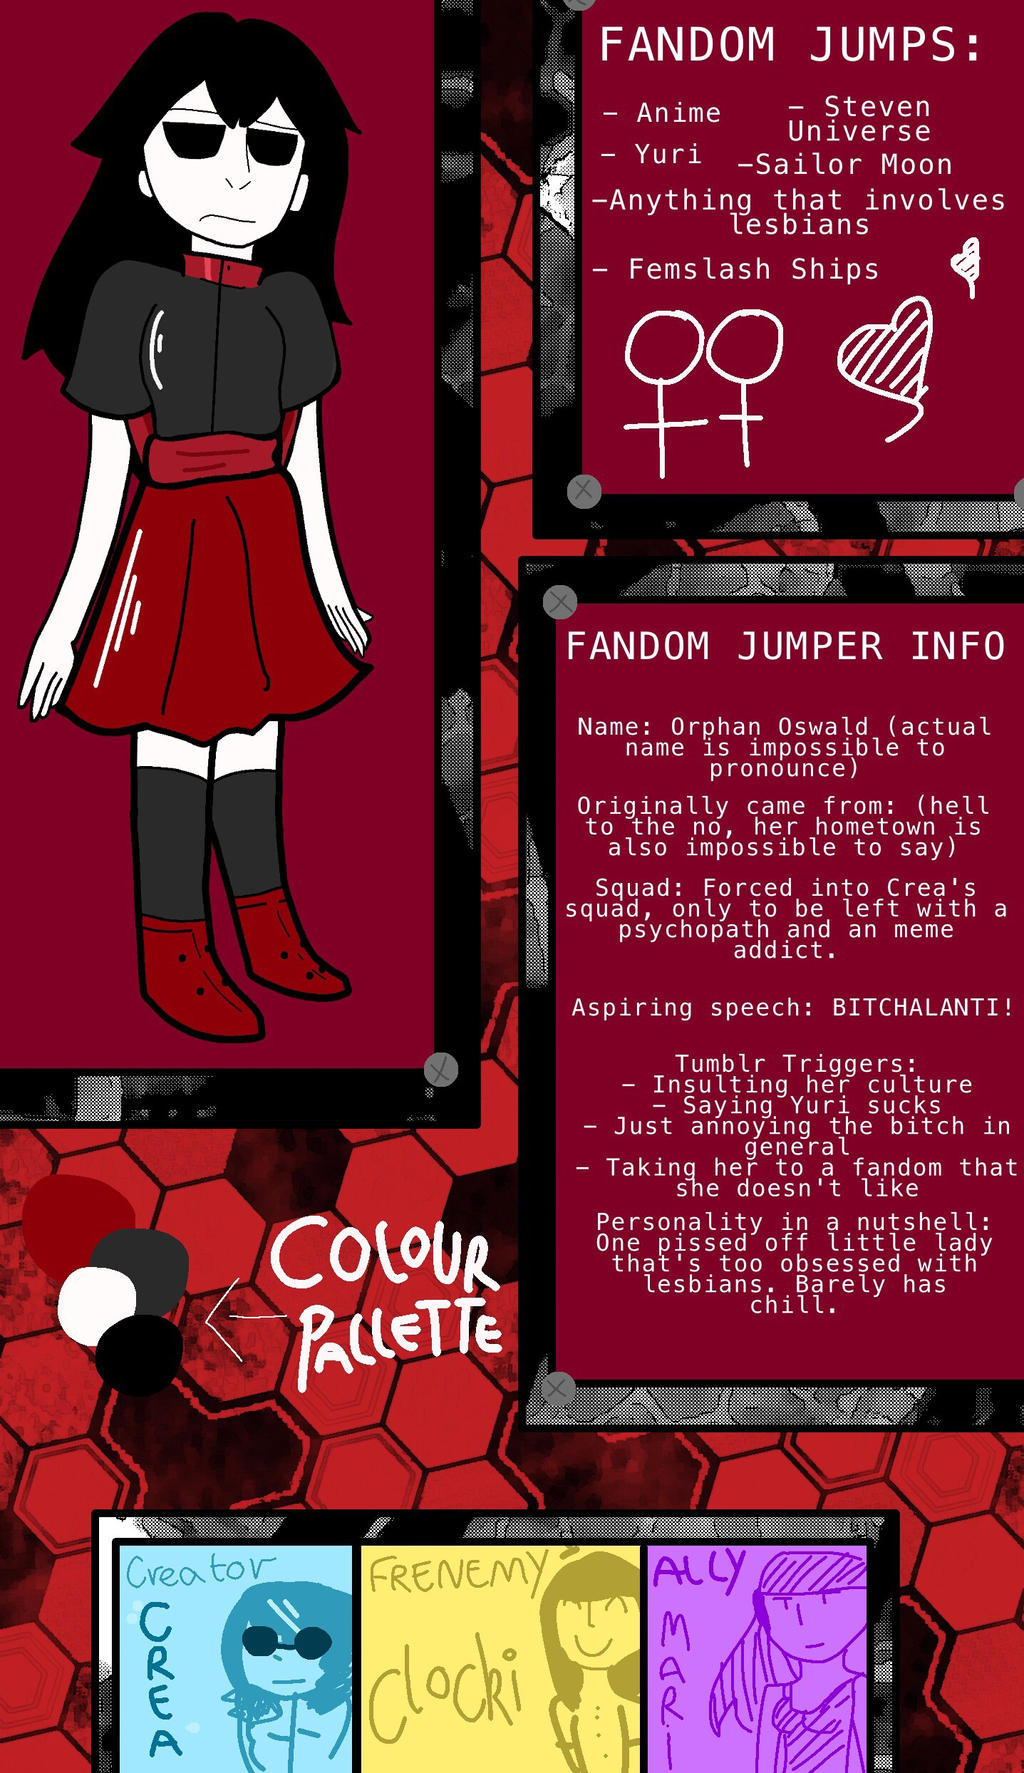 FANDOM JUMPER: ORPHAN by Cl0k1 on DeviantArt